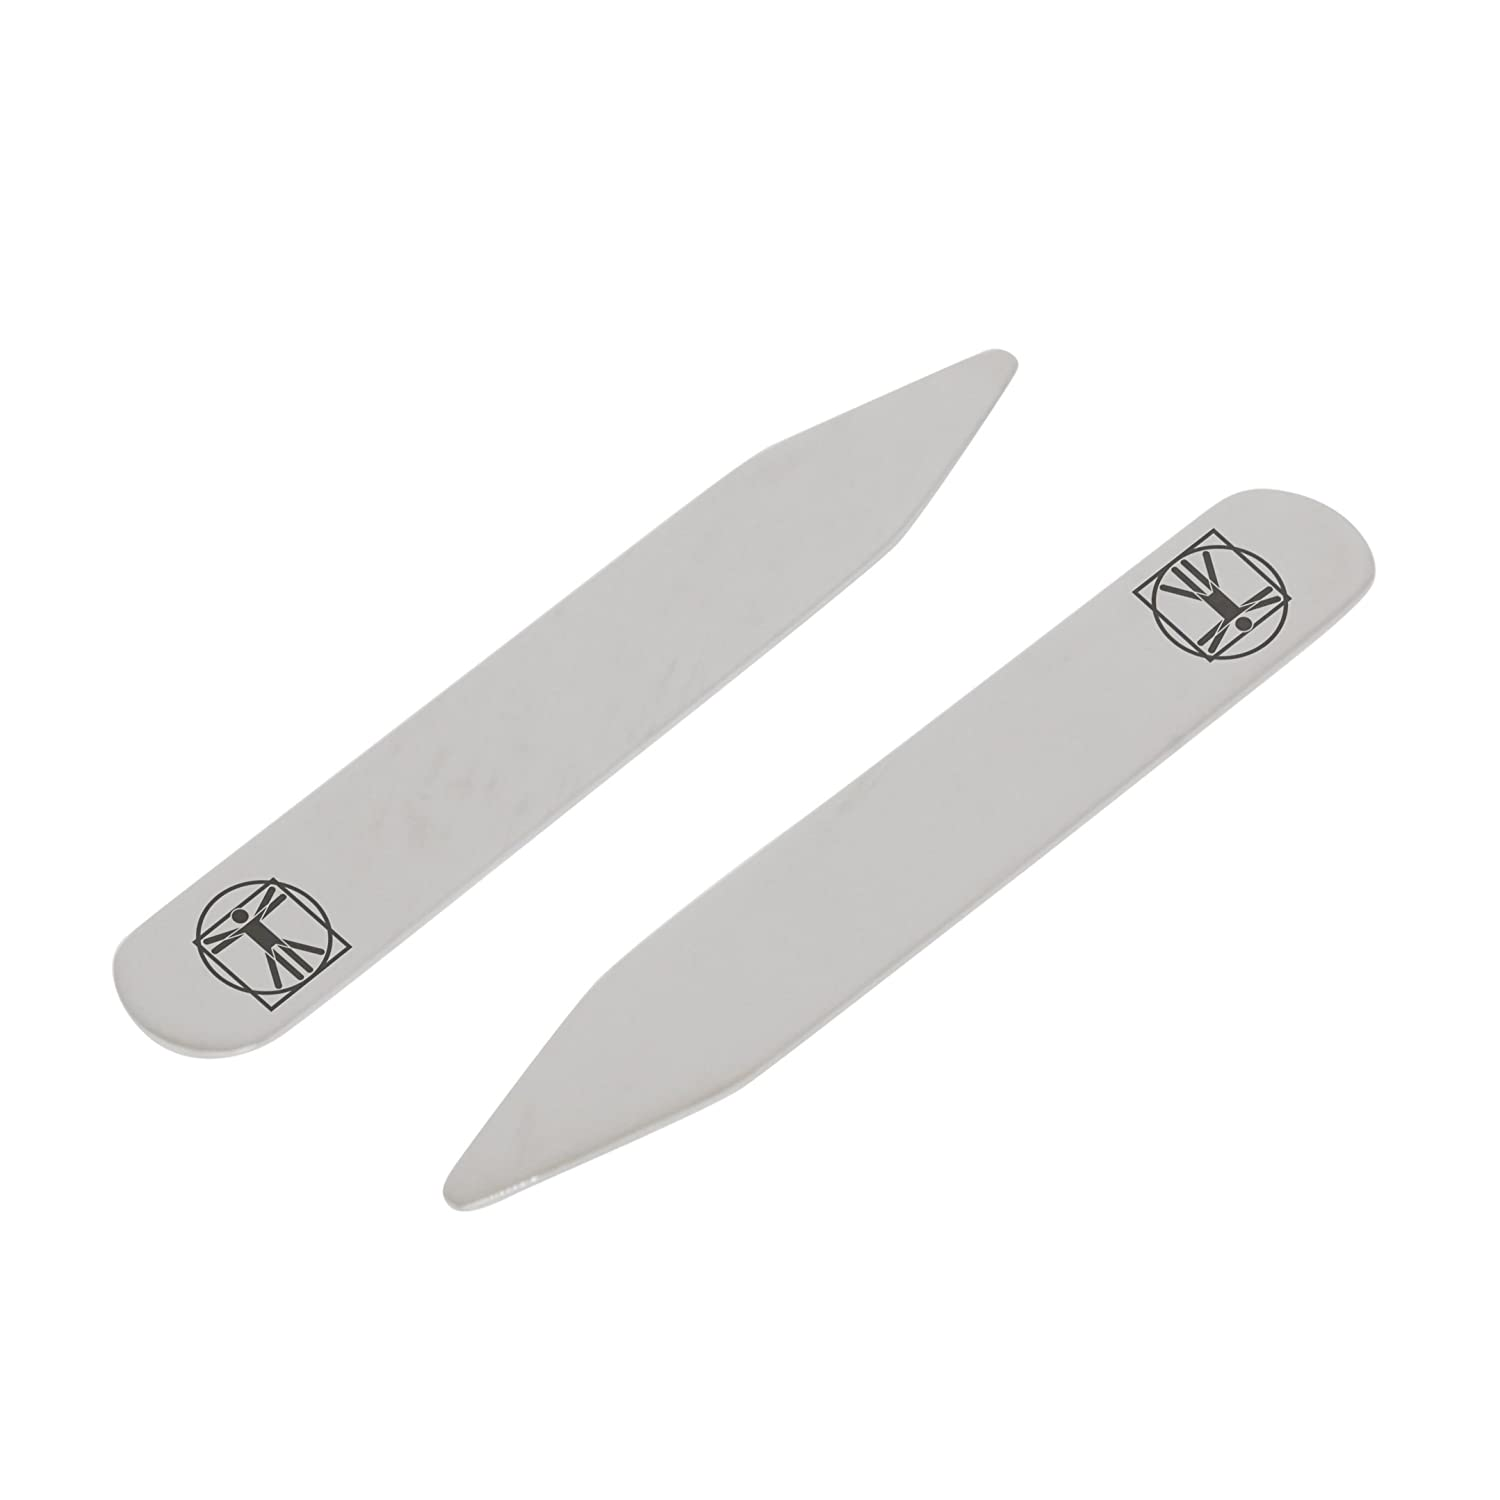 2.5 Inch Metal Collar Stiffeners Made In USA MODERN GOODS SHOP Stainless Steel Collar Stays With Laser Engraved Vitruvian Man Design